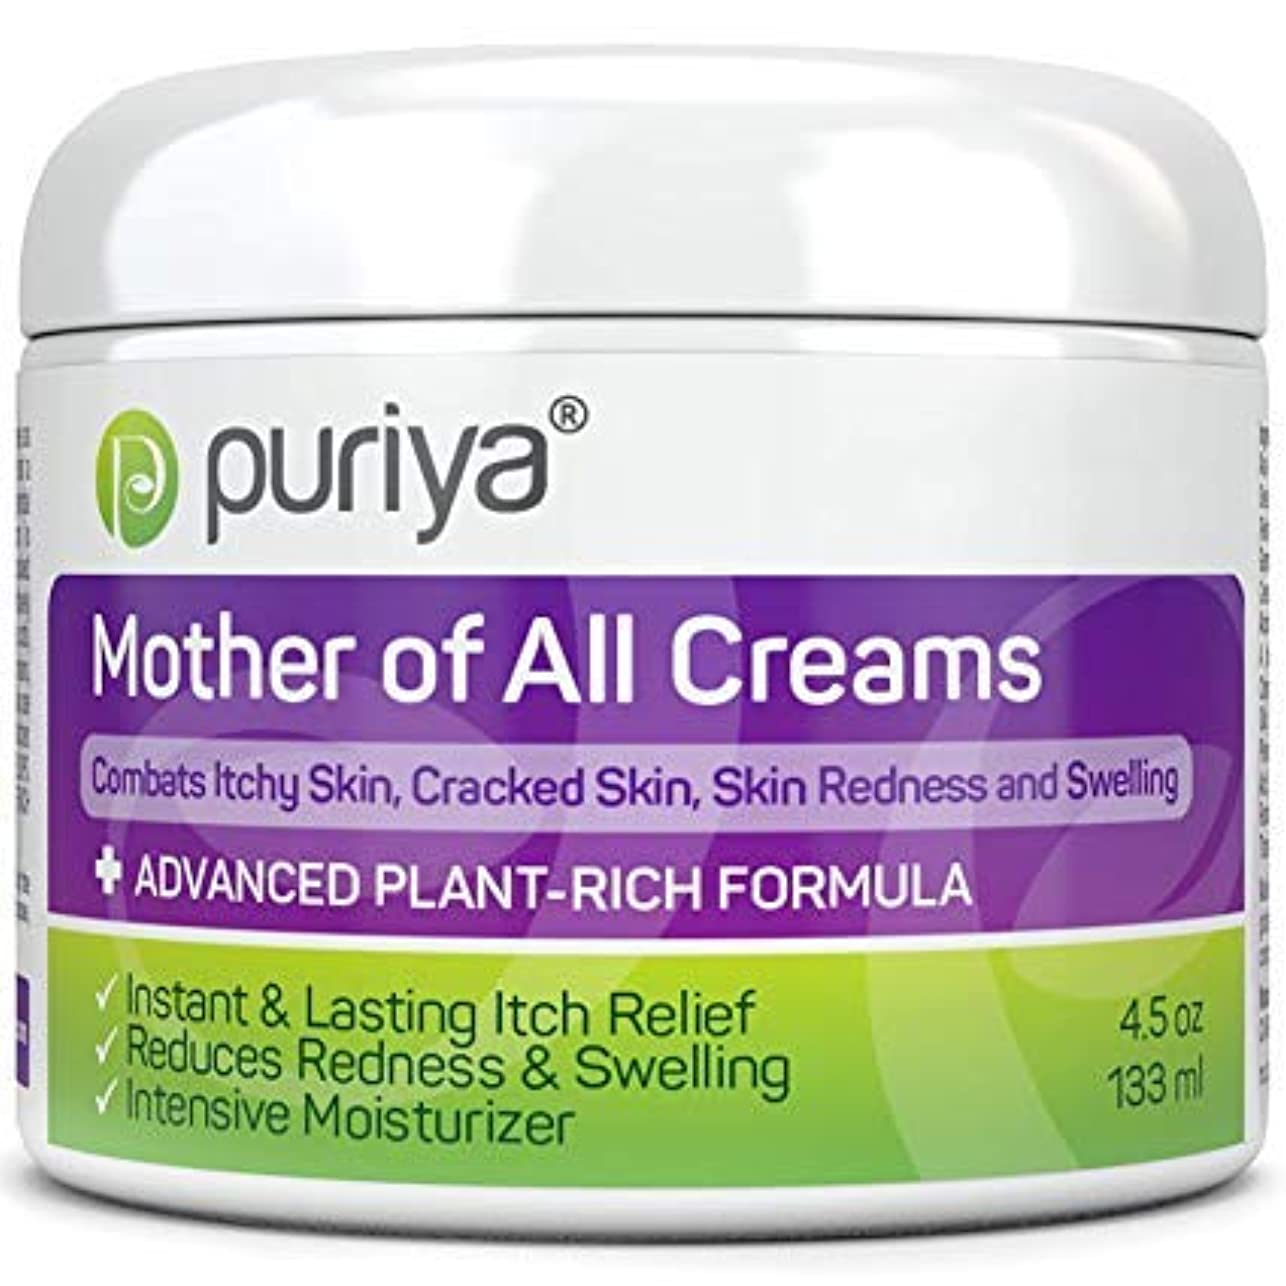 一貫性のない致死ルーチンPuriya マザーオブオールクリーム Mother of All Creams Cream For Eczema, Psoriasis, Dermatitis and Rashes. Powerful Plant Rich Formula Provides Instant and Lasting Relief For Severely Dry, Cracked, or Irritated Skin (4.5 oz) [並行輸入品]